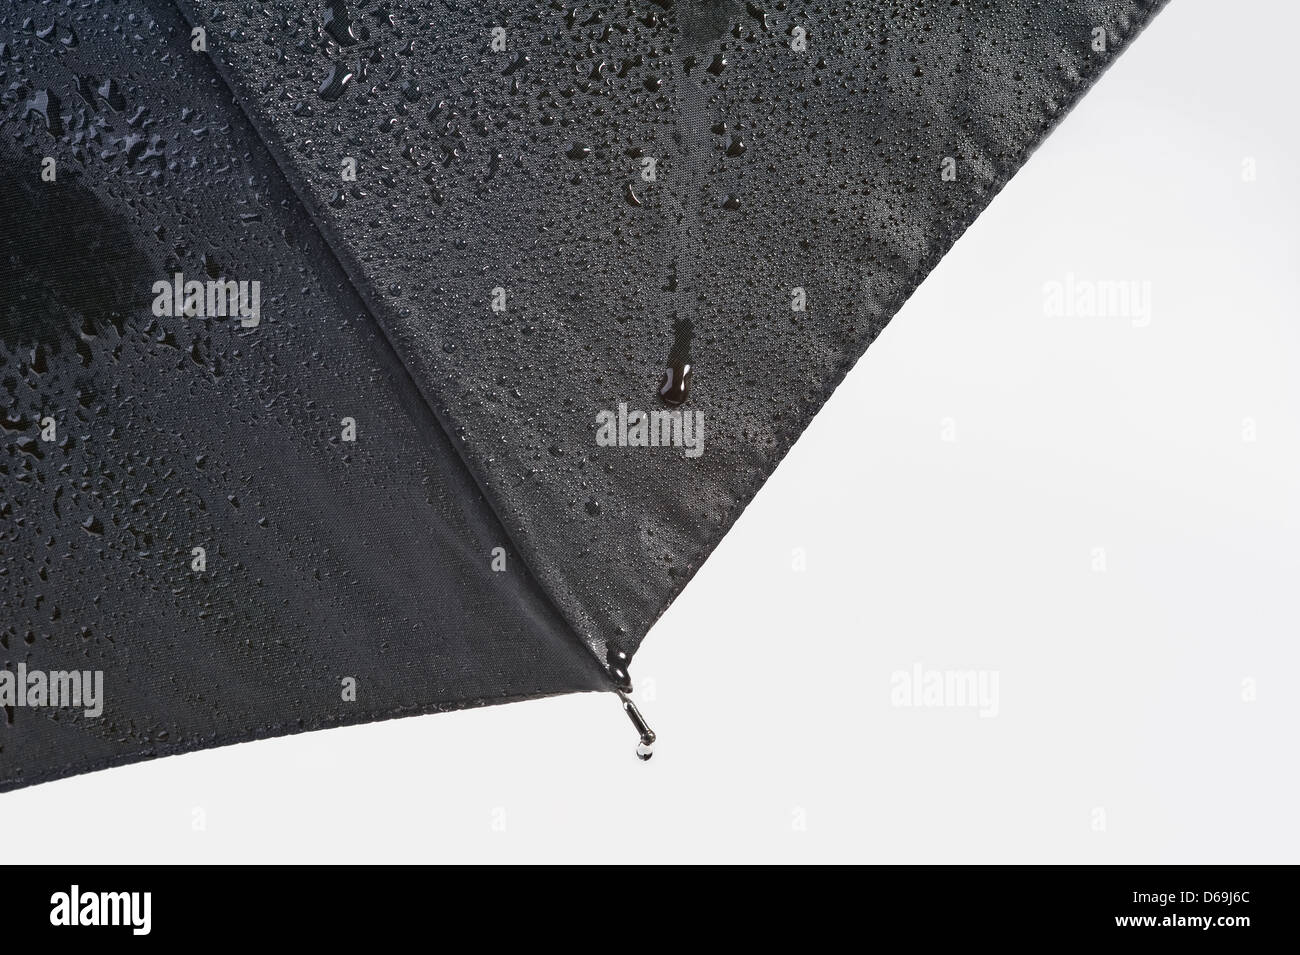 Section of an umbrella with rain drops. - Stock Image